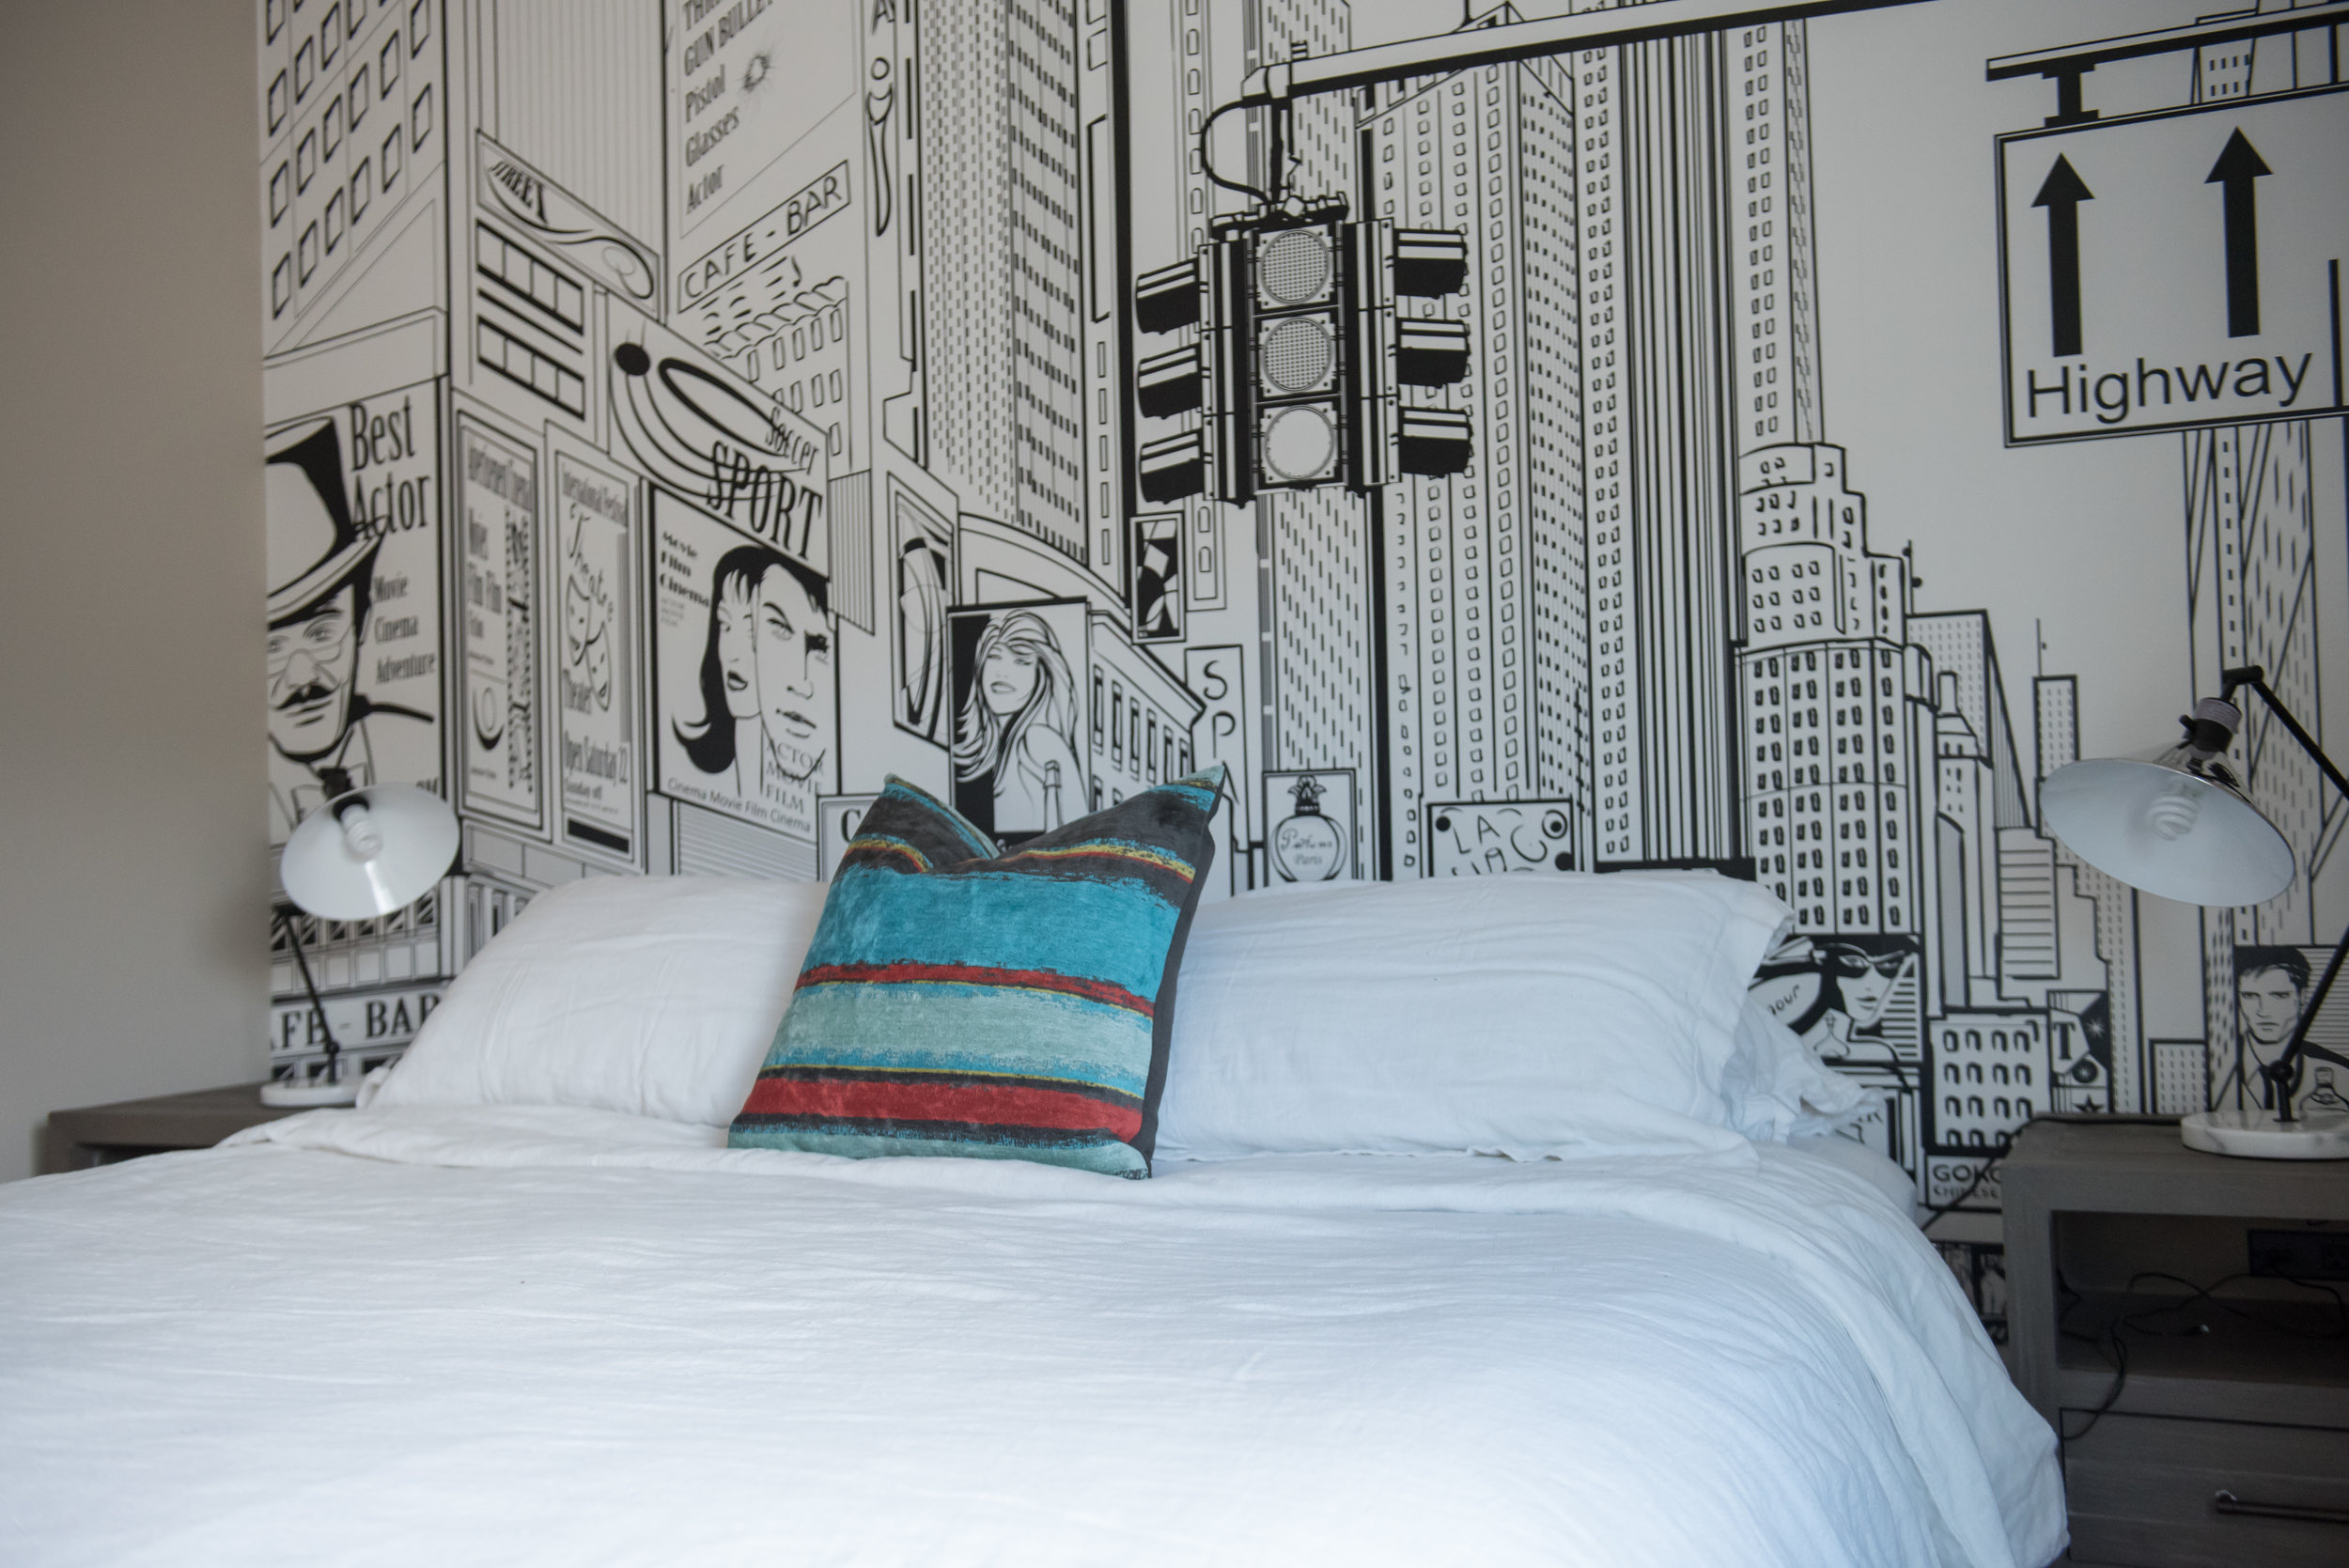 22 Teenroom+Mural+Wallpaper+CityScape+Urban.jpg